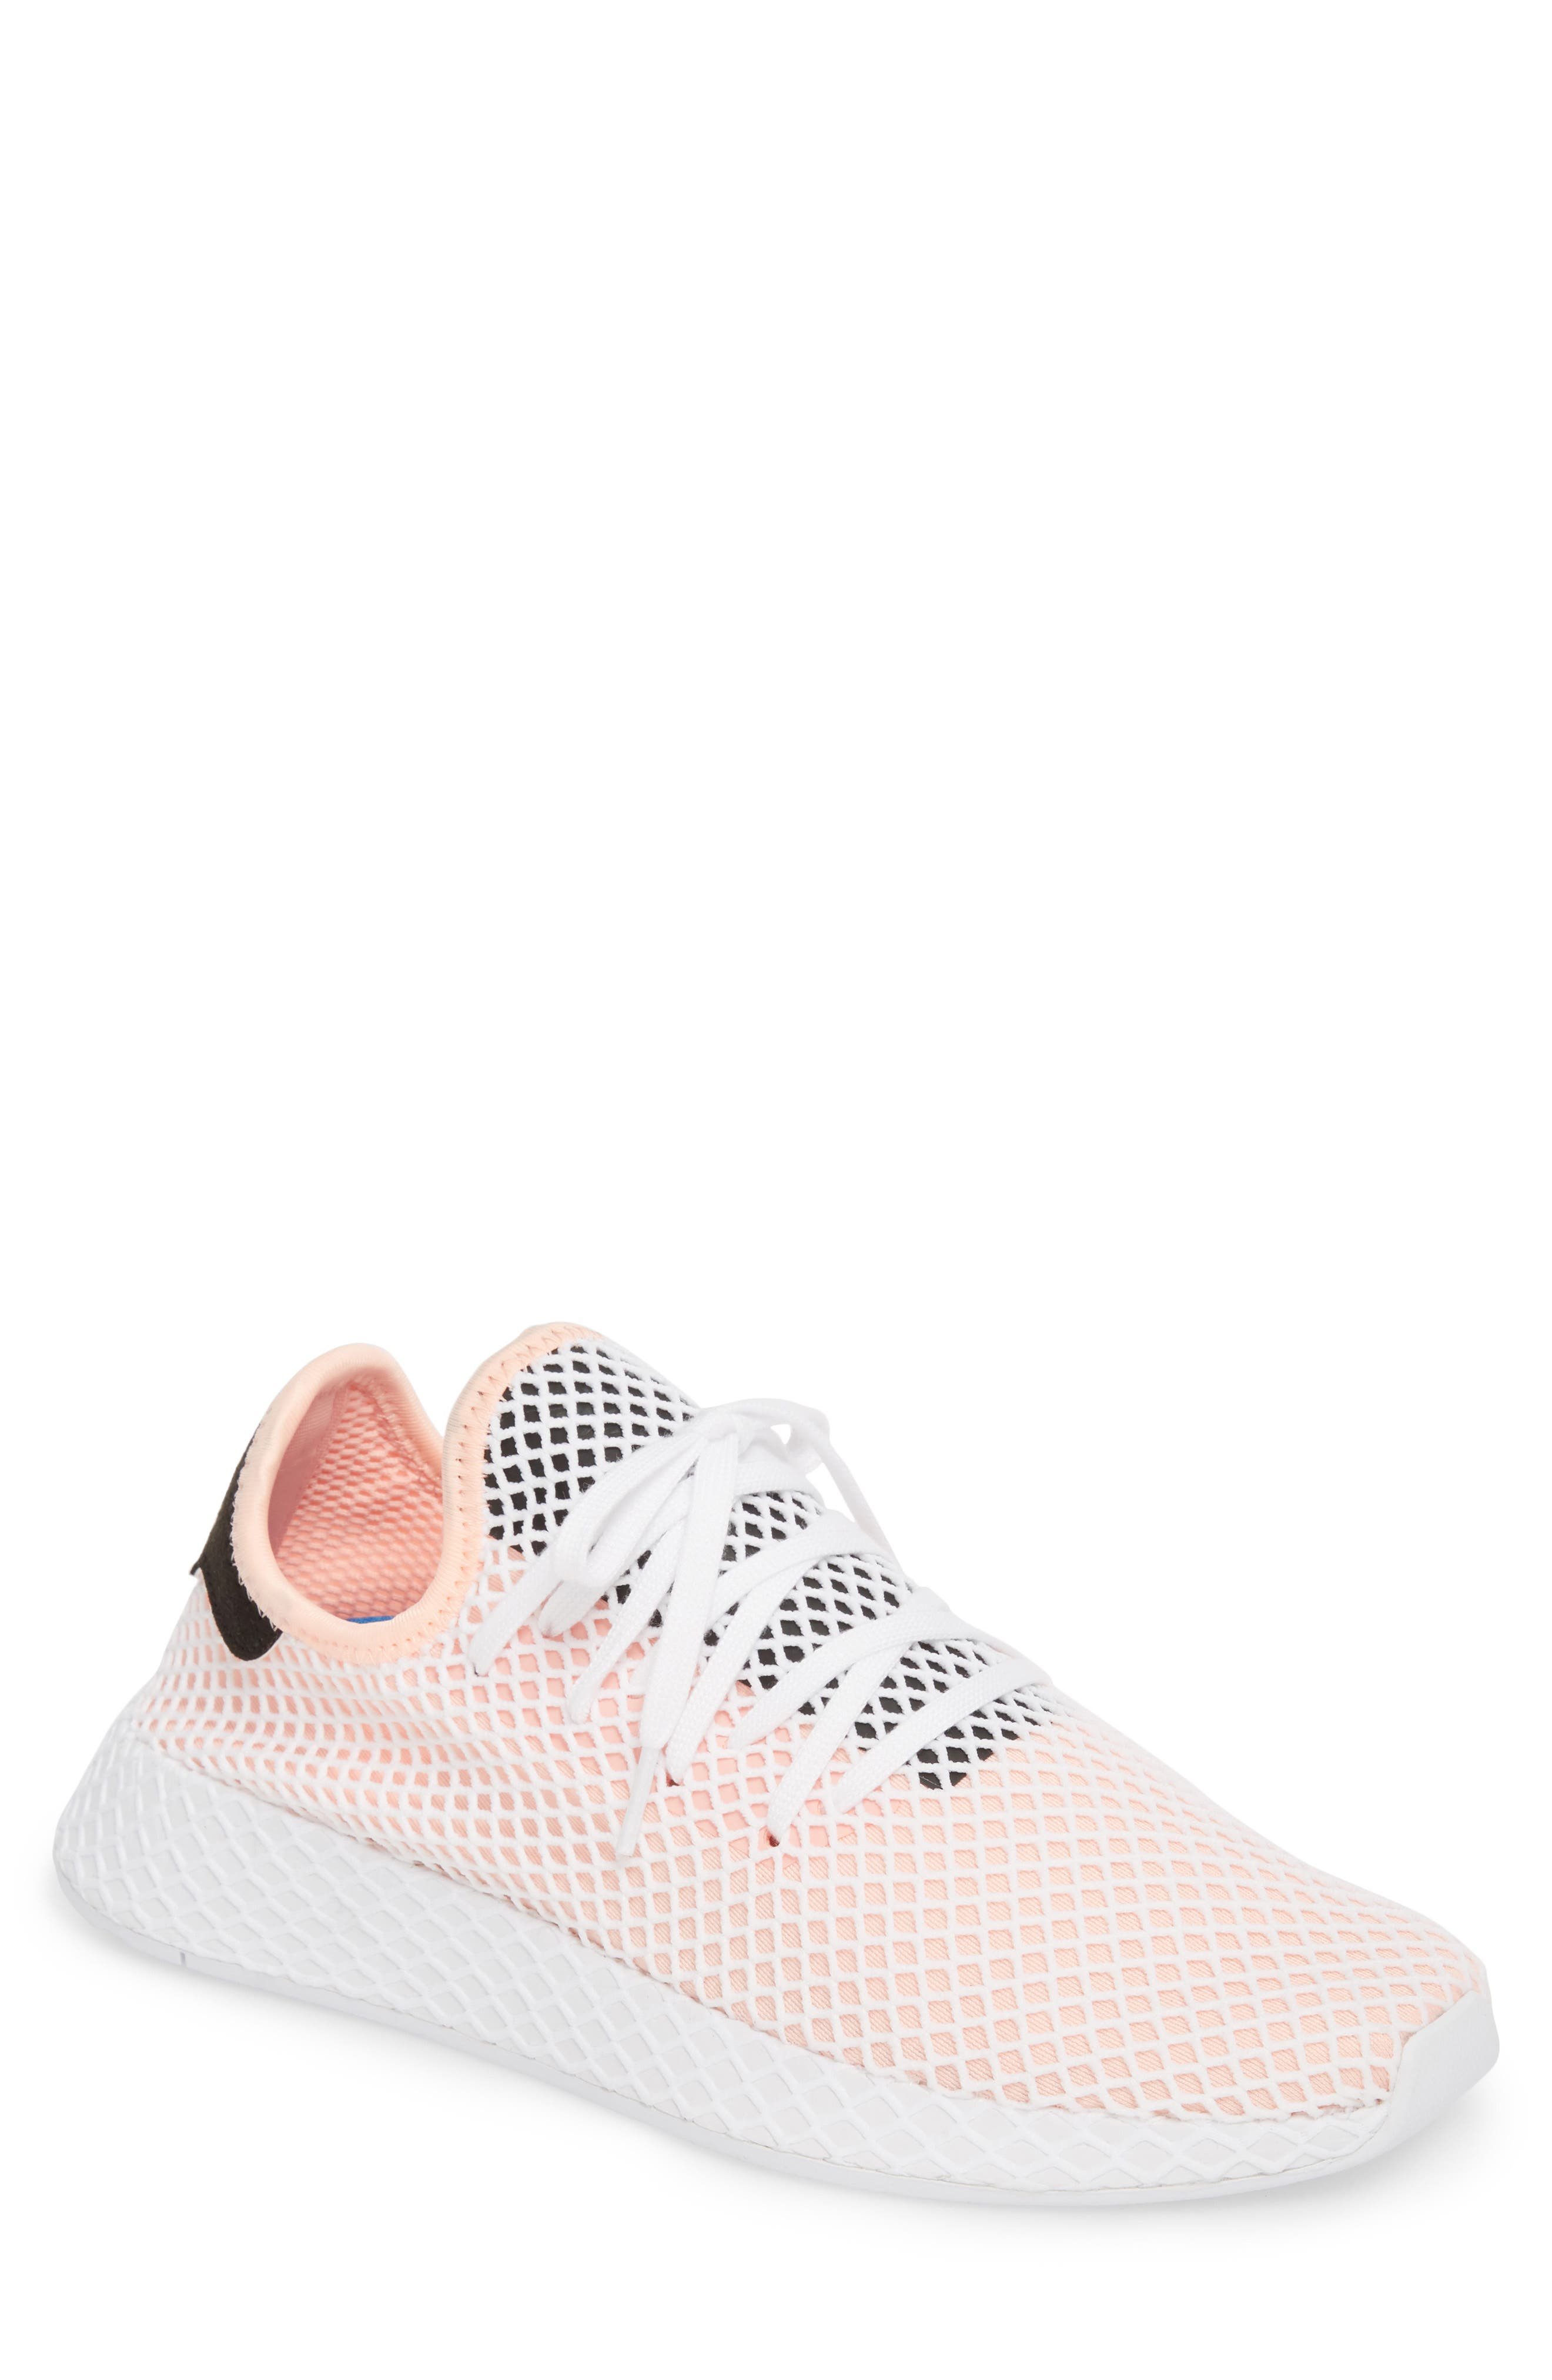 adidas Deerupt Runner Sneaker (Men)